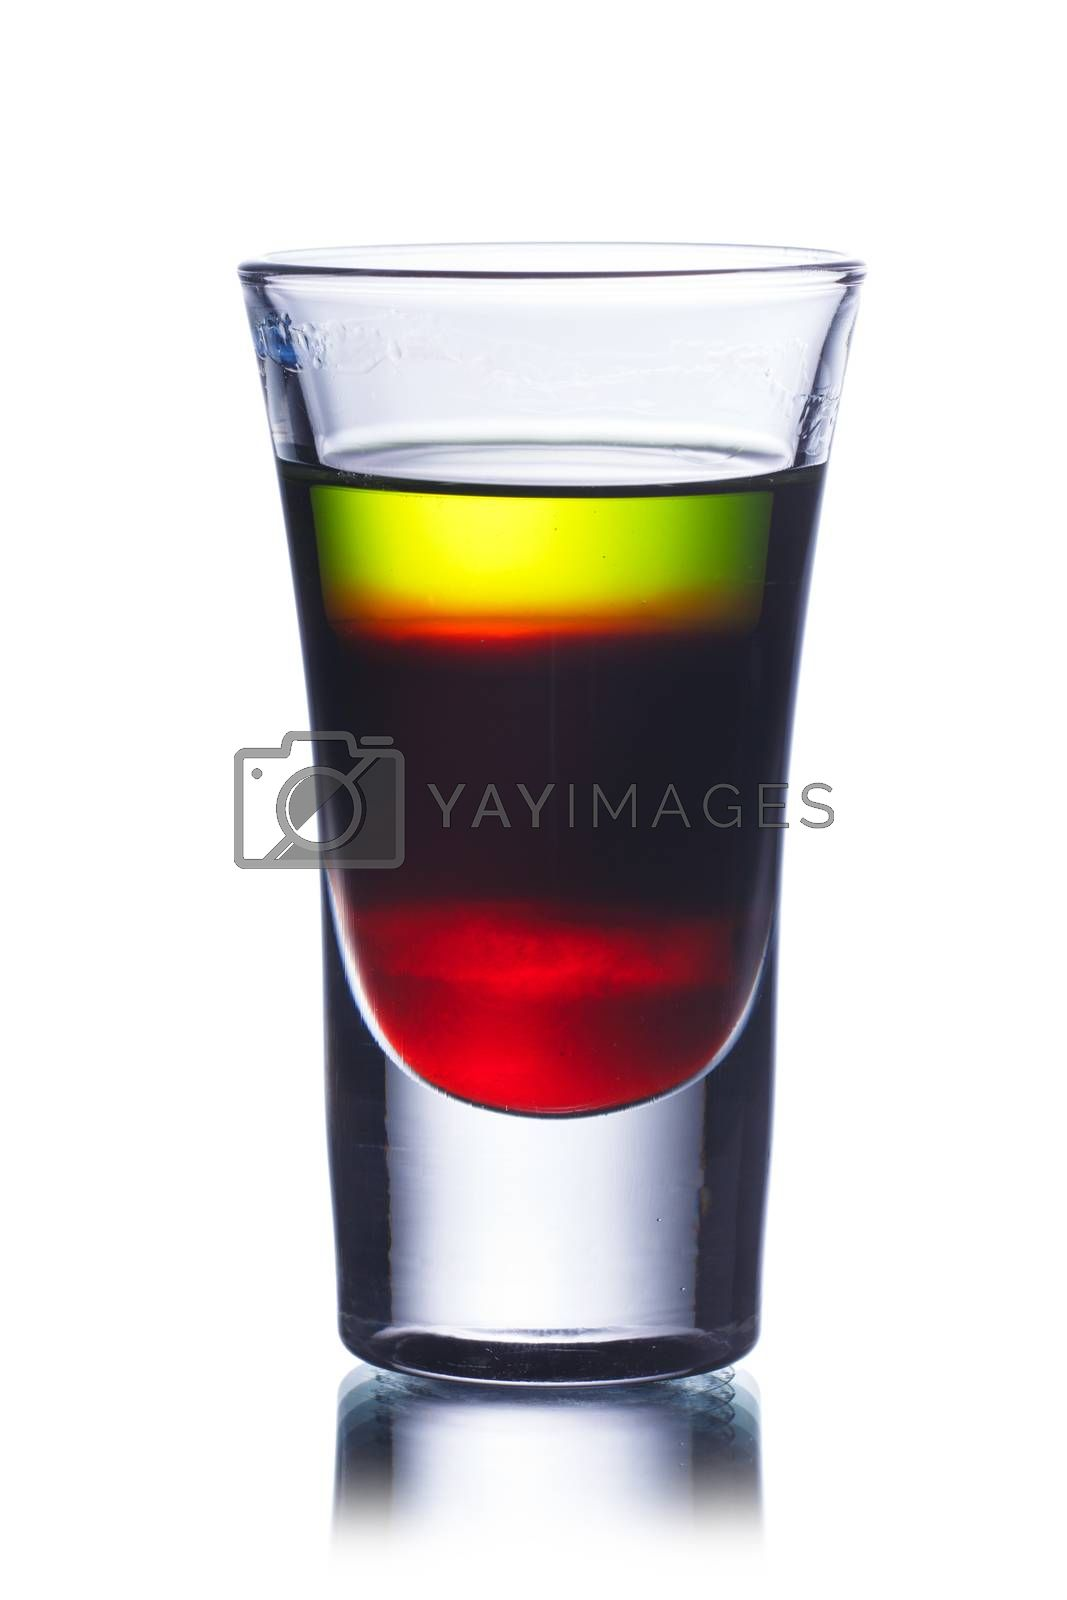 Royalty free image of Shot drink by maxsol